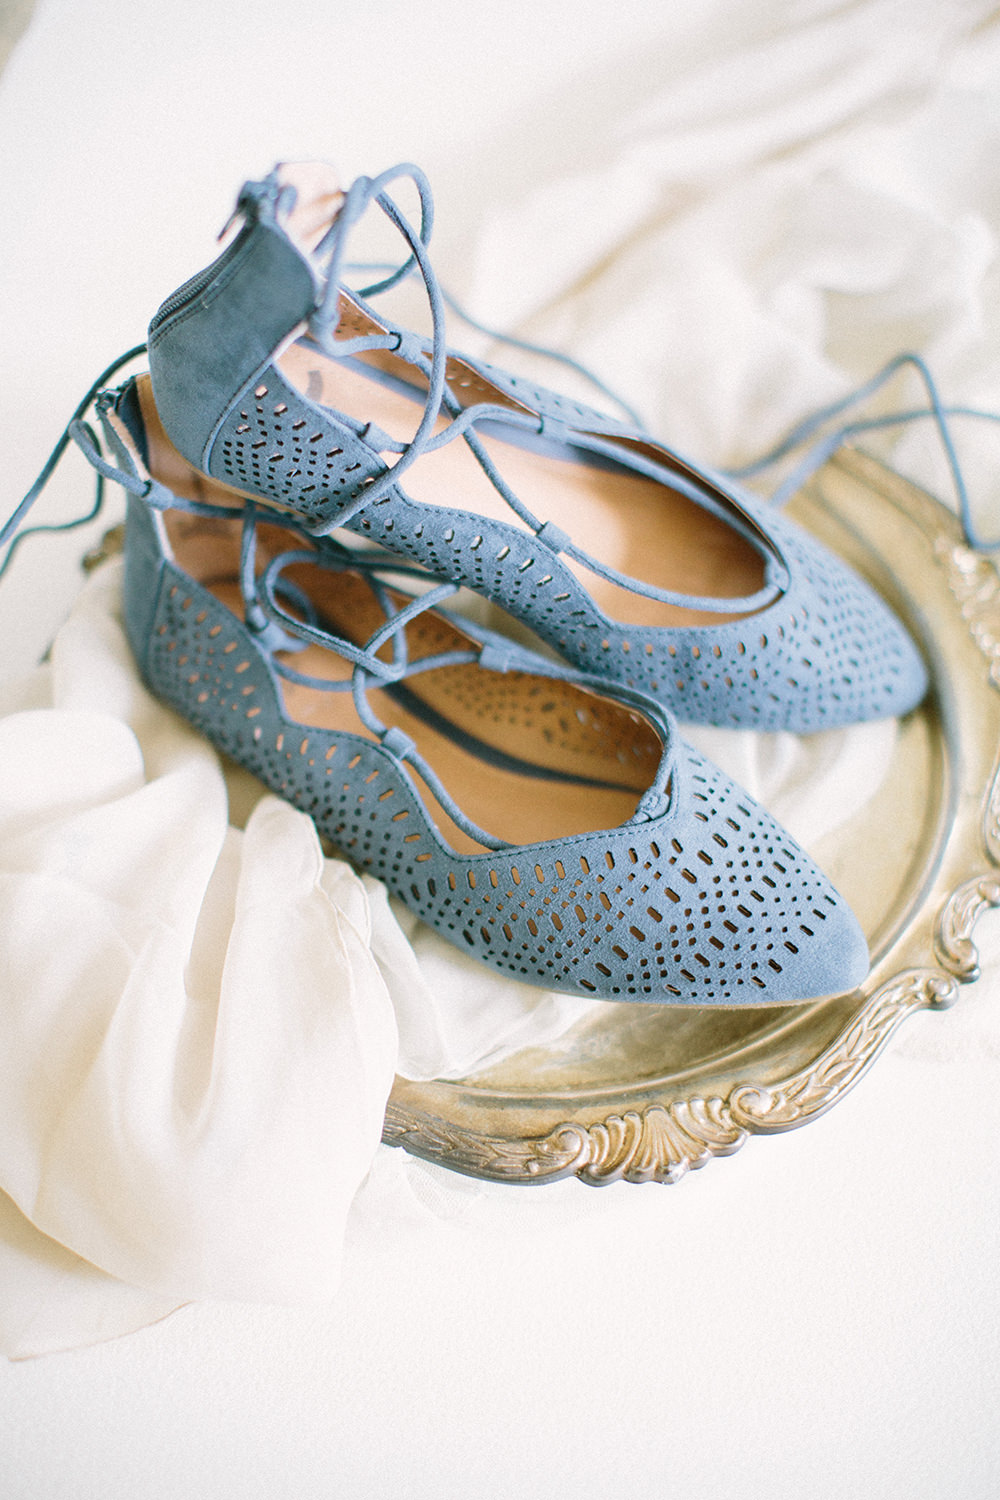 blue wedding shoes - photo by Erica J Photography http://ruffledblog.com/old-world-wedding-editorial-at-vizcaya-museum